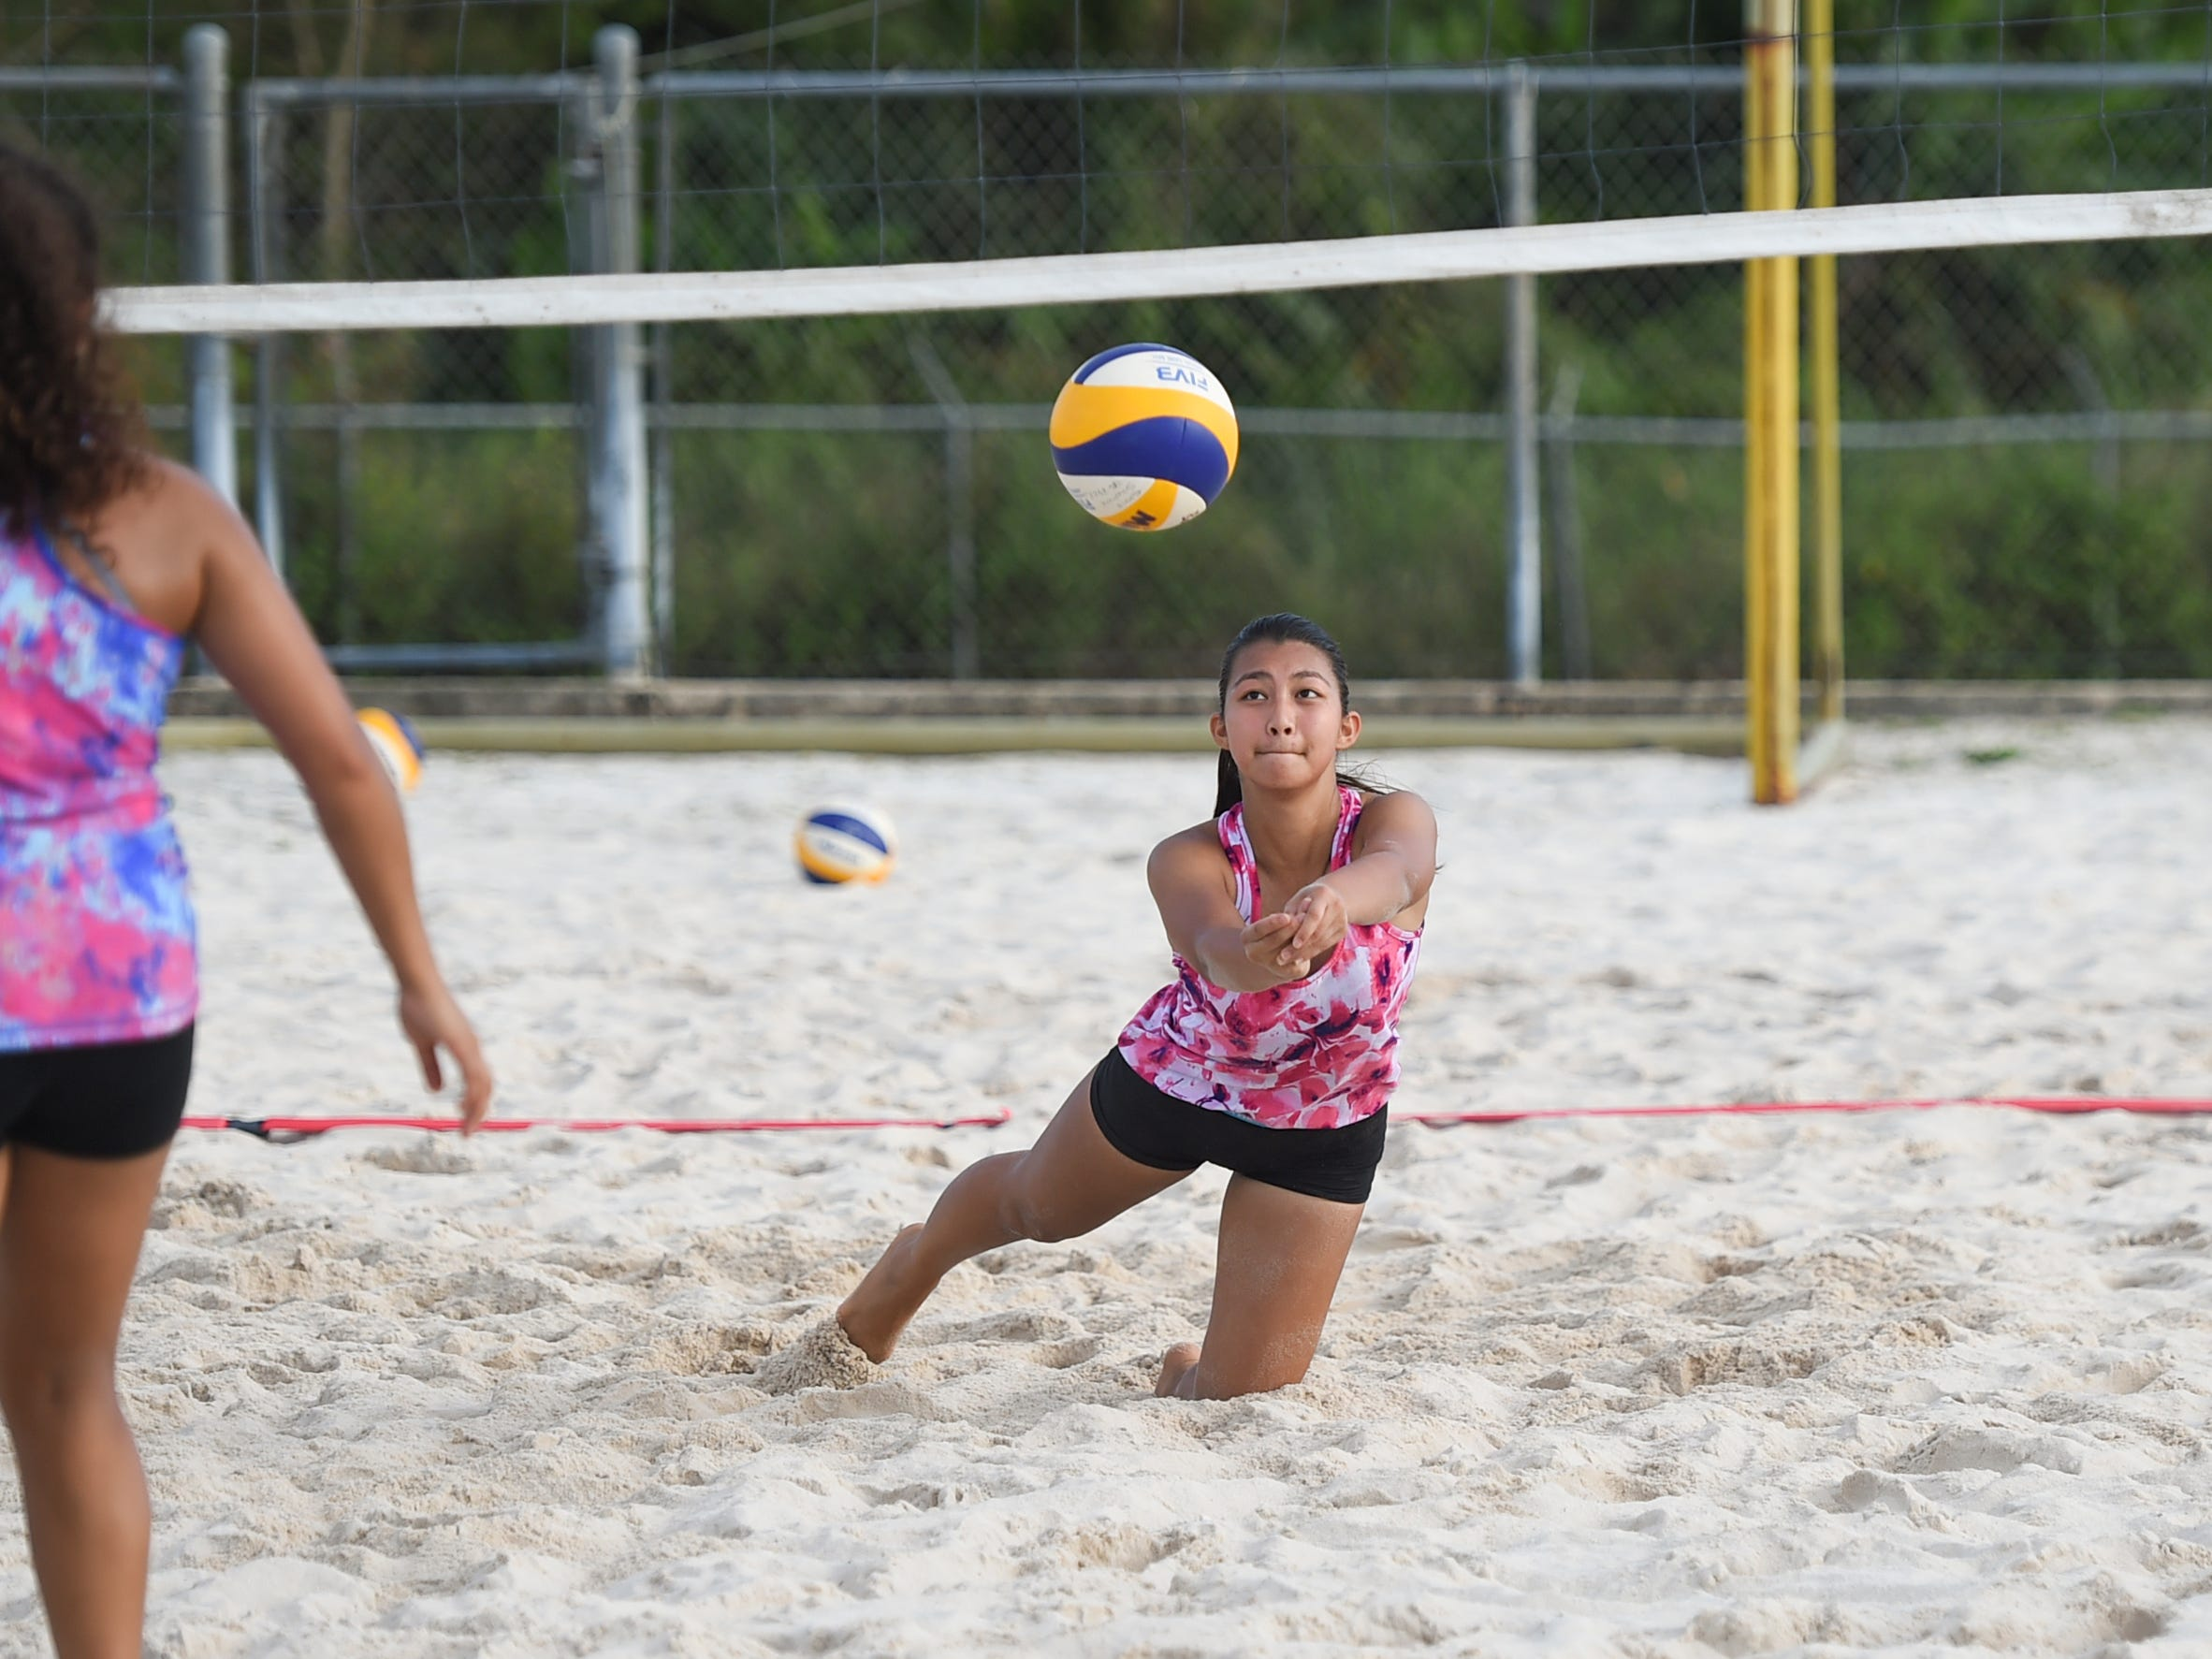 St. John's player Aileen Tseng digs on a play during the IIAAG Beach Volleyball third place game at the Guam Football Association National Training Center in Dededo, March 12, 2019.